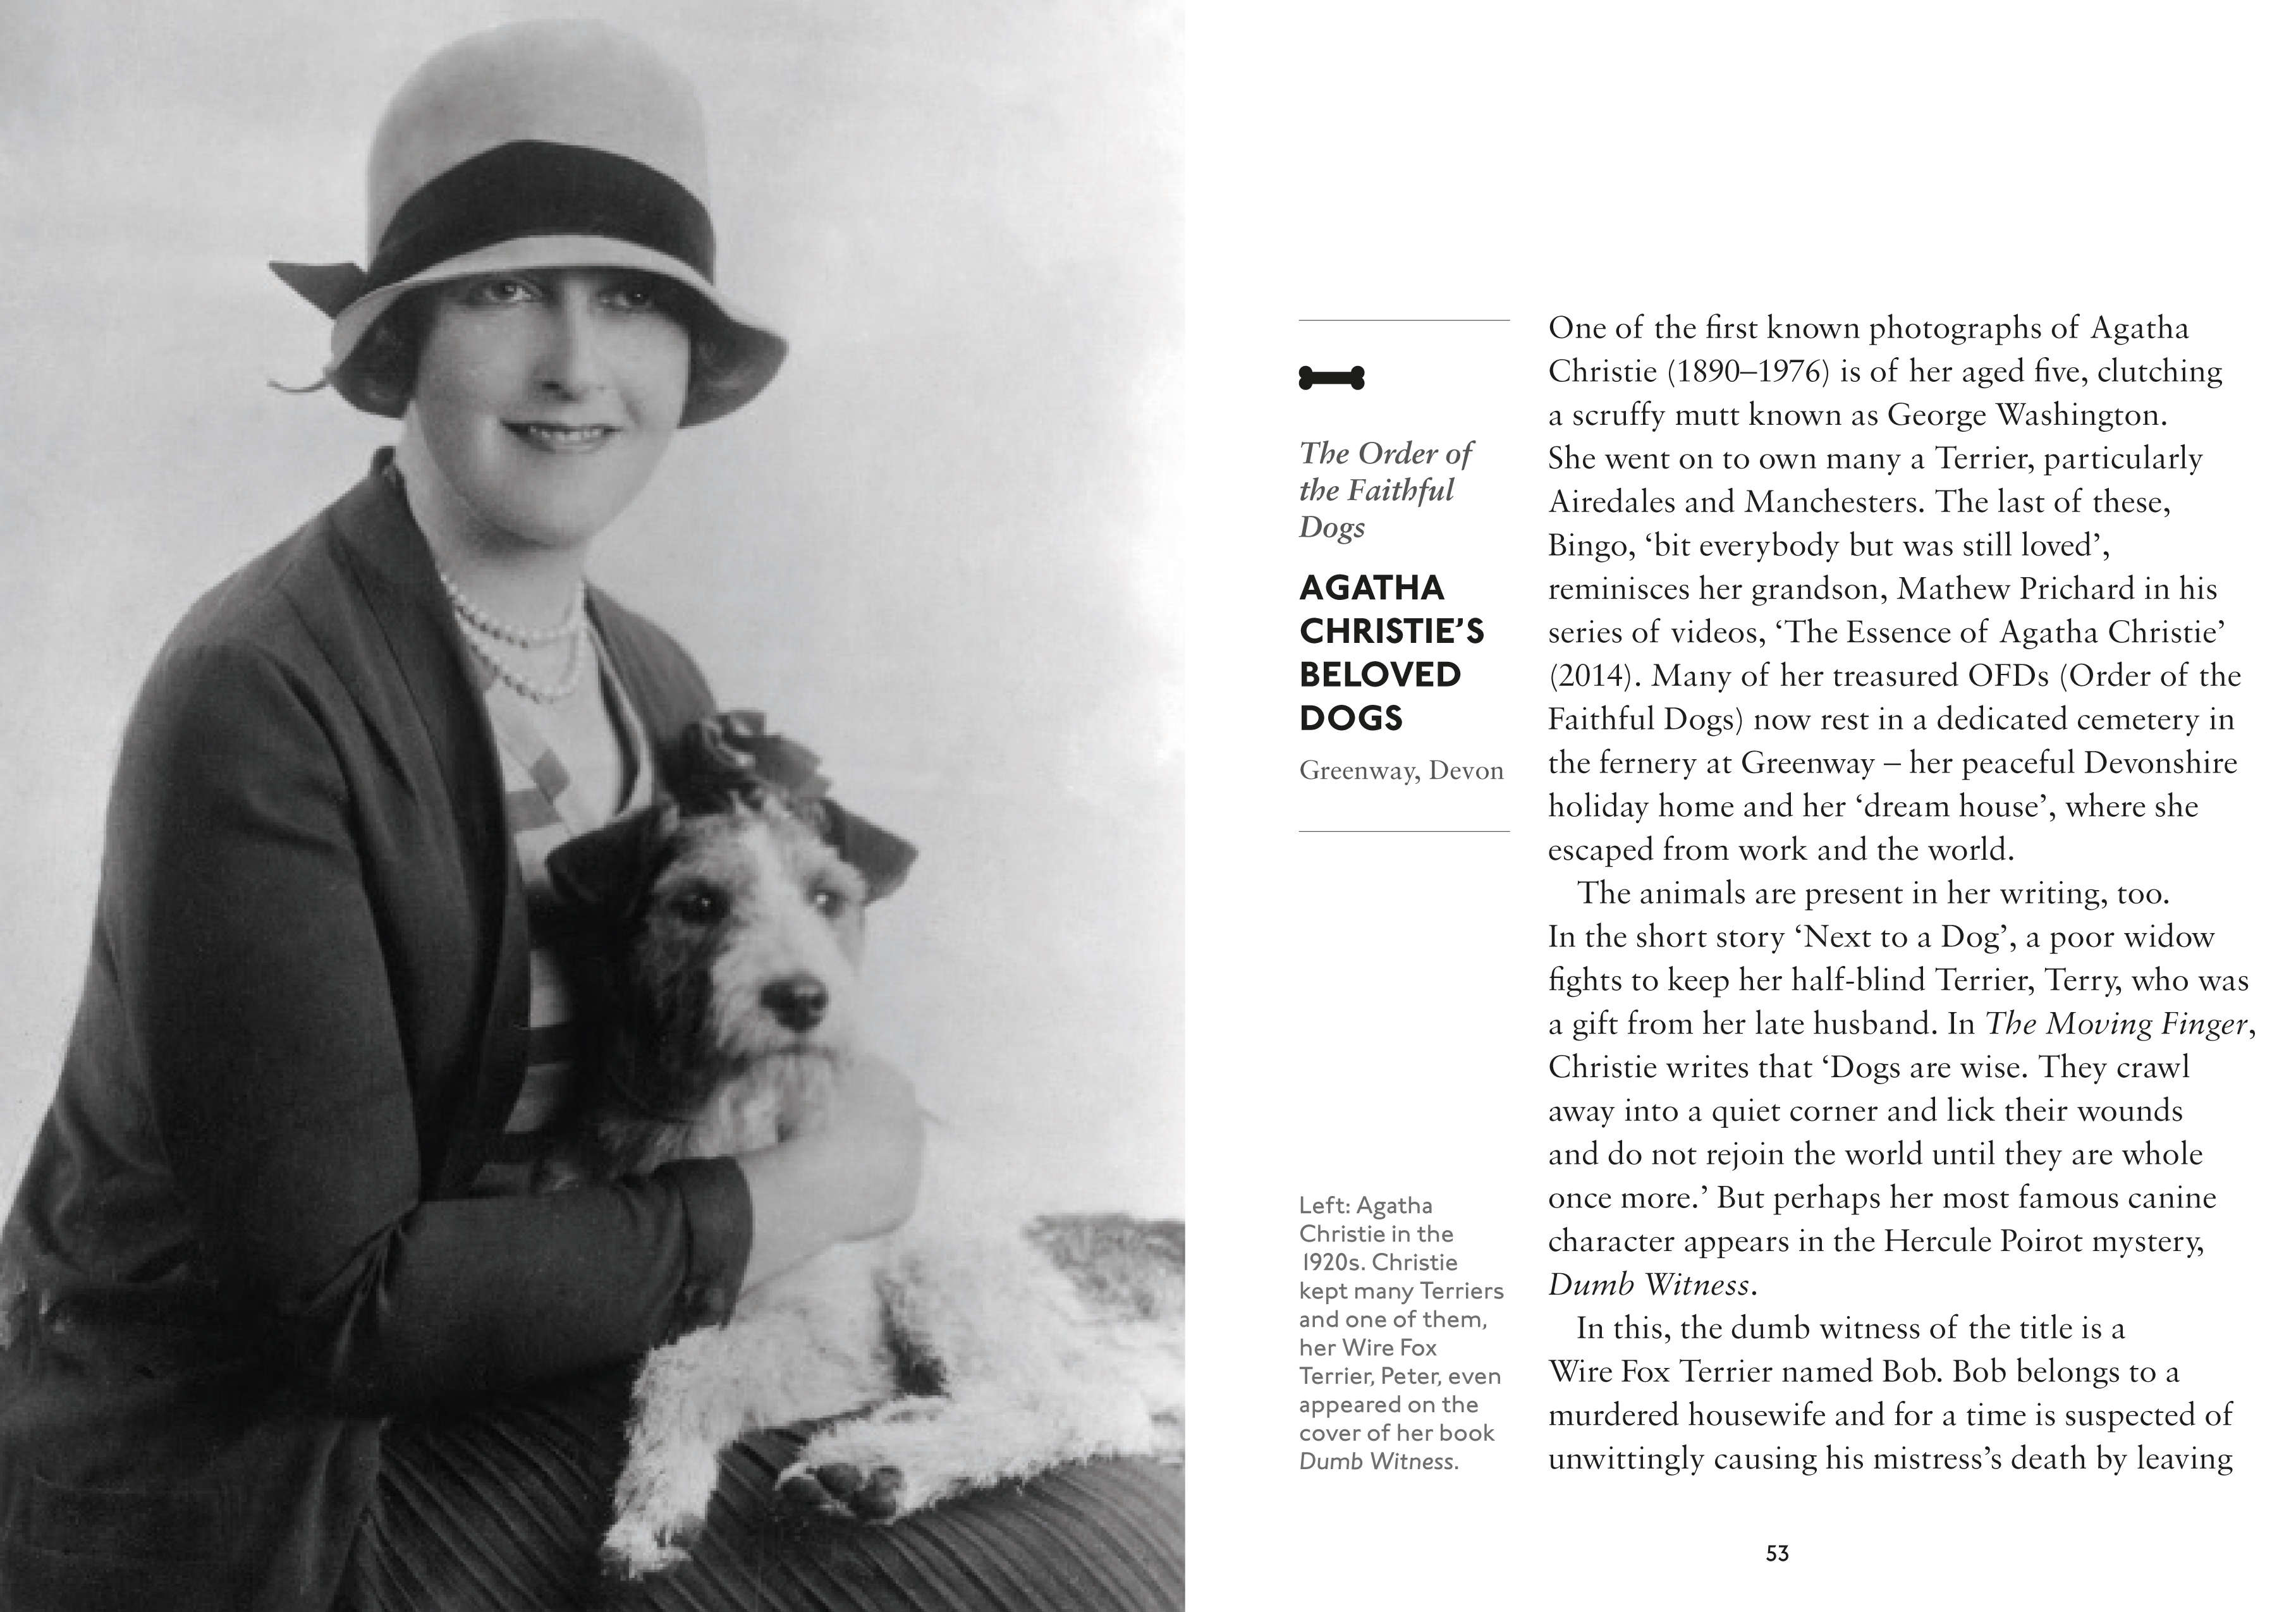 Agatha Christie and her terrier